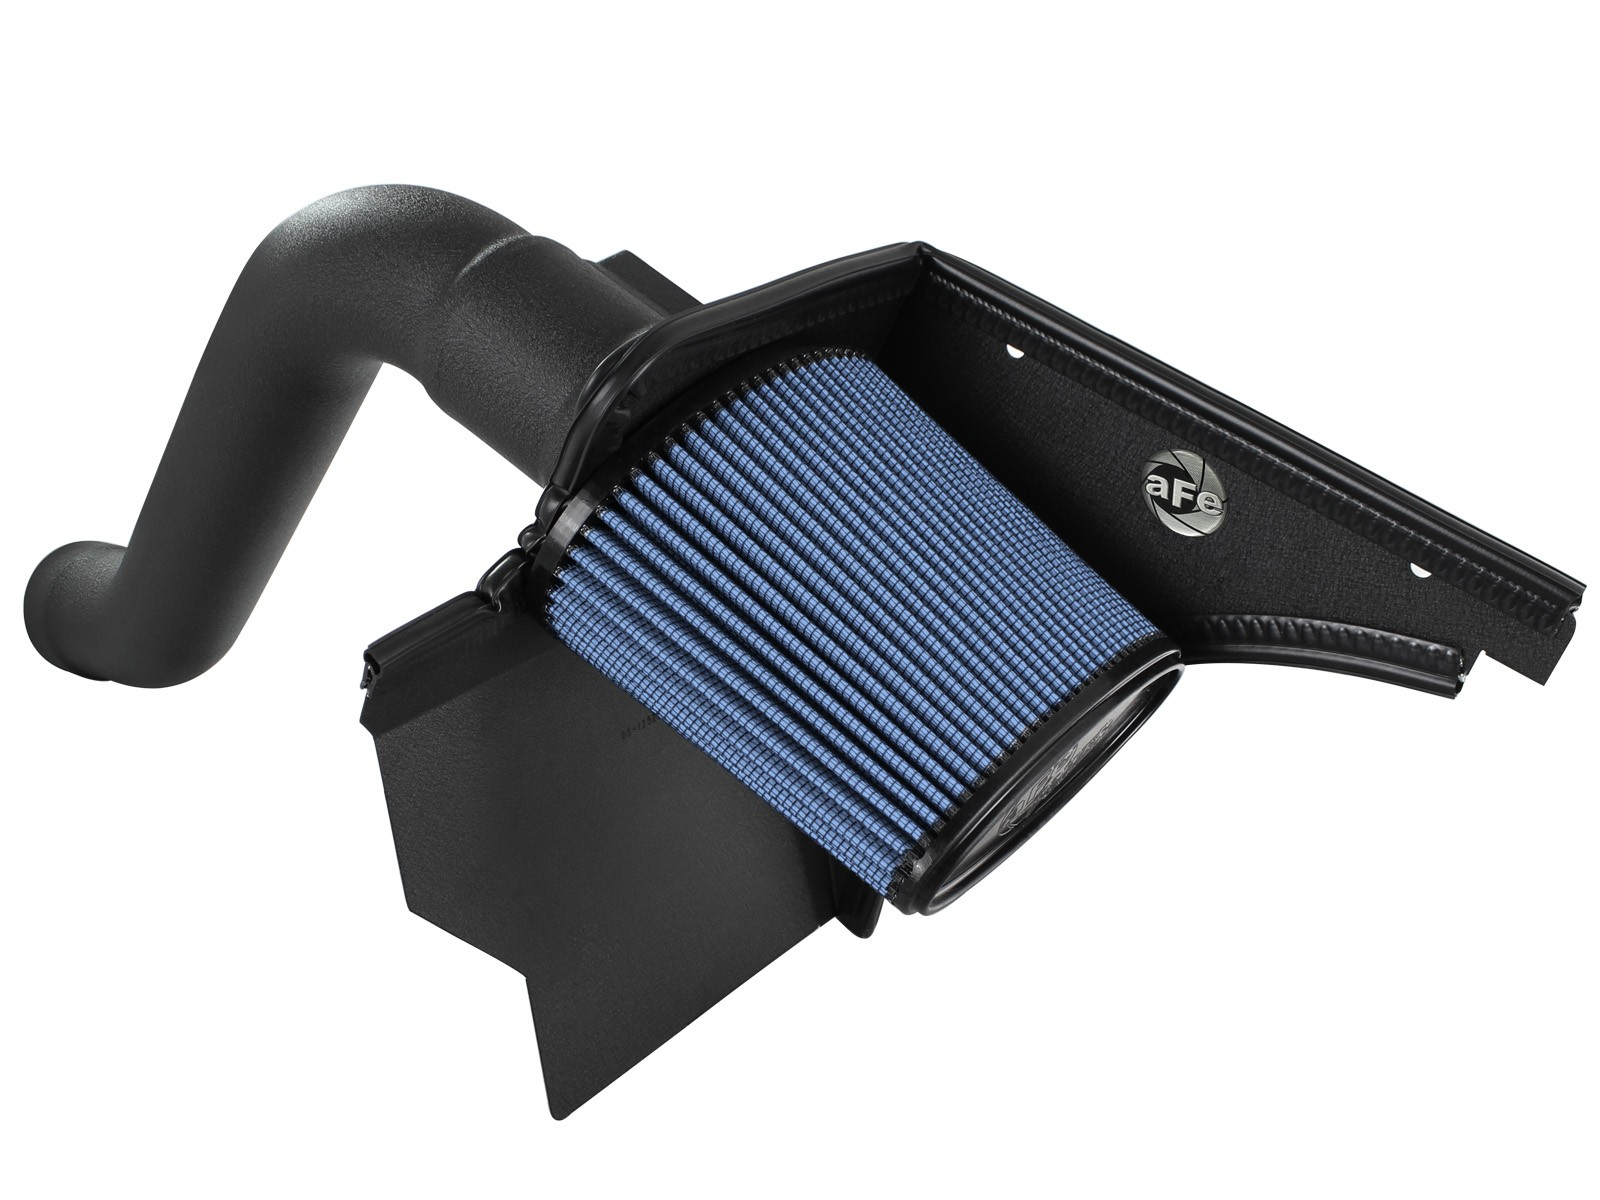 aFe POWER 54-12522 Magnum FORCE Stage-2 Pro 5R Cold Air Intake System